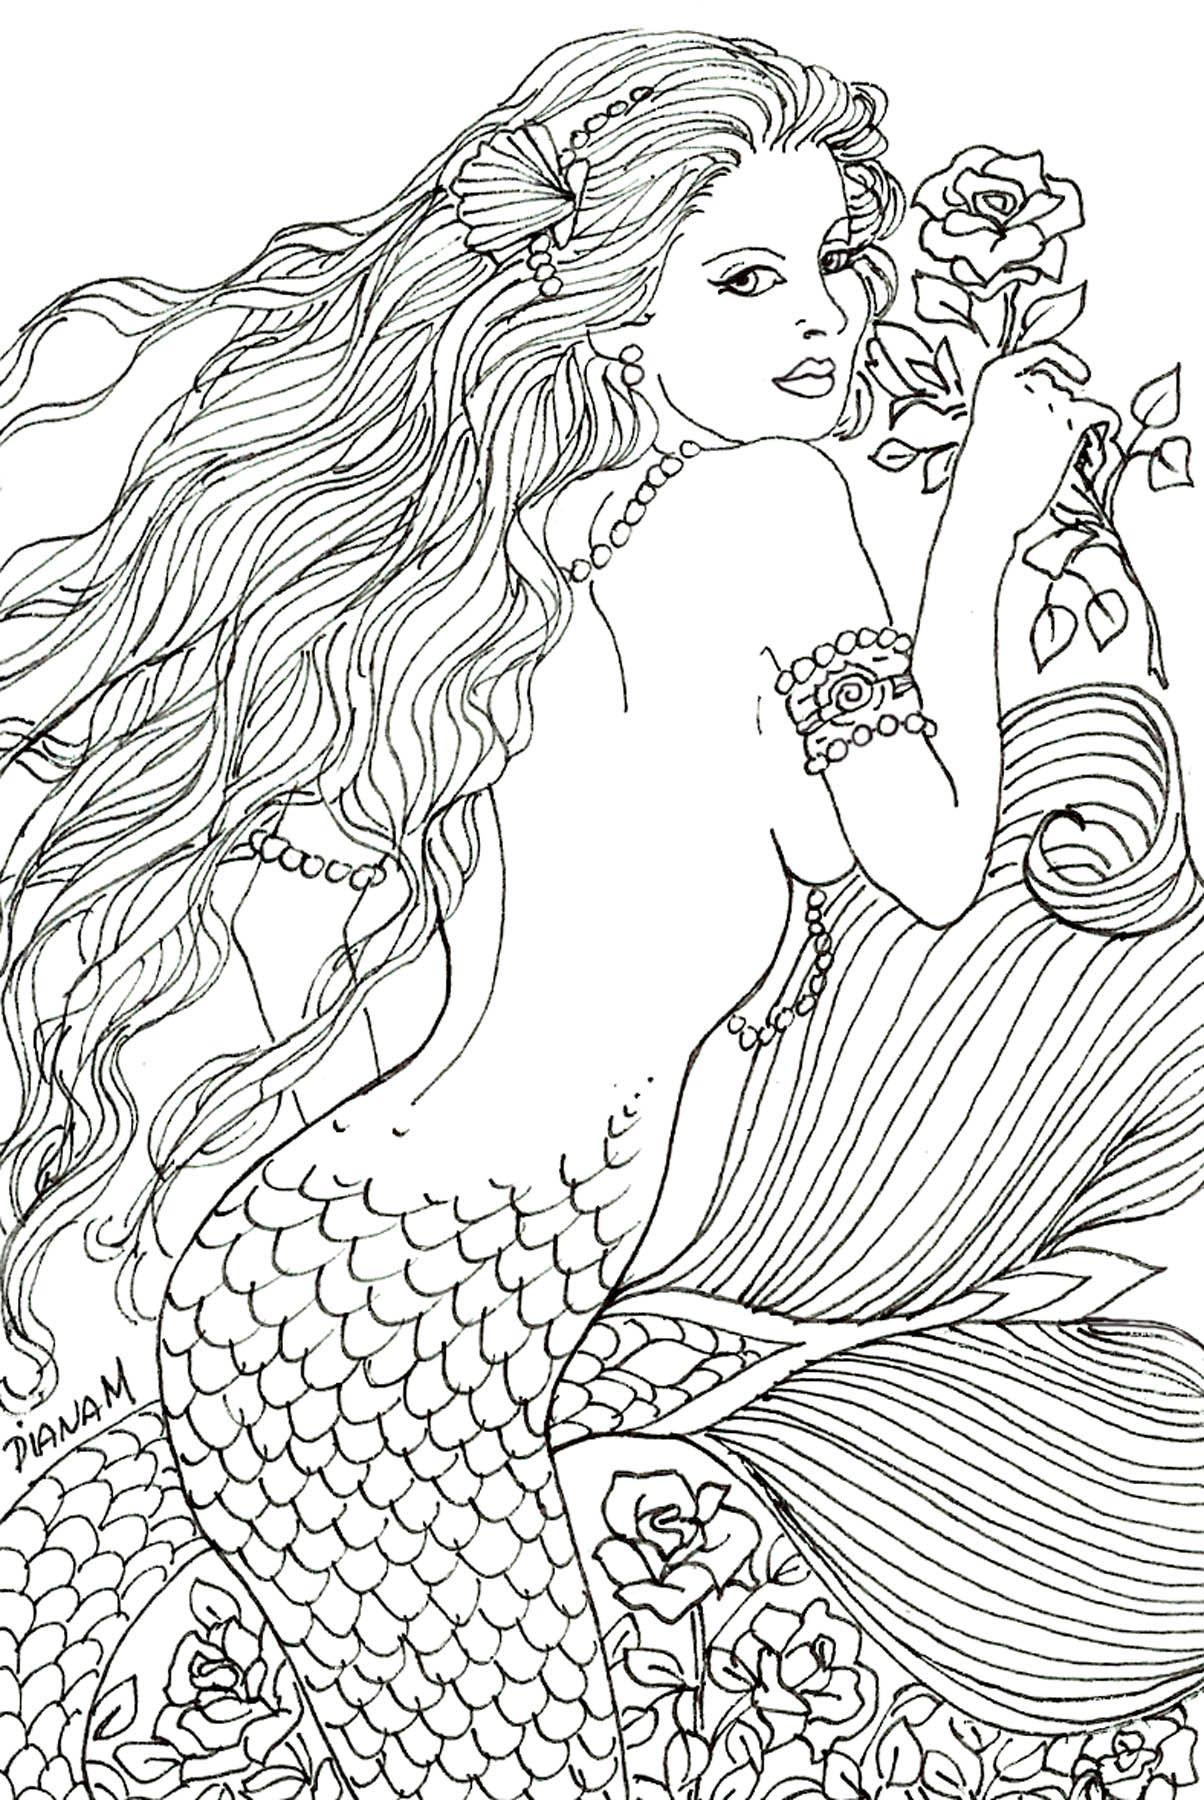 I Love Roses Mermaid Coloring Mermaid Coloring Pages Coloring Books